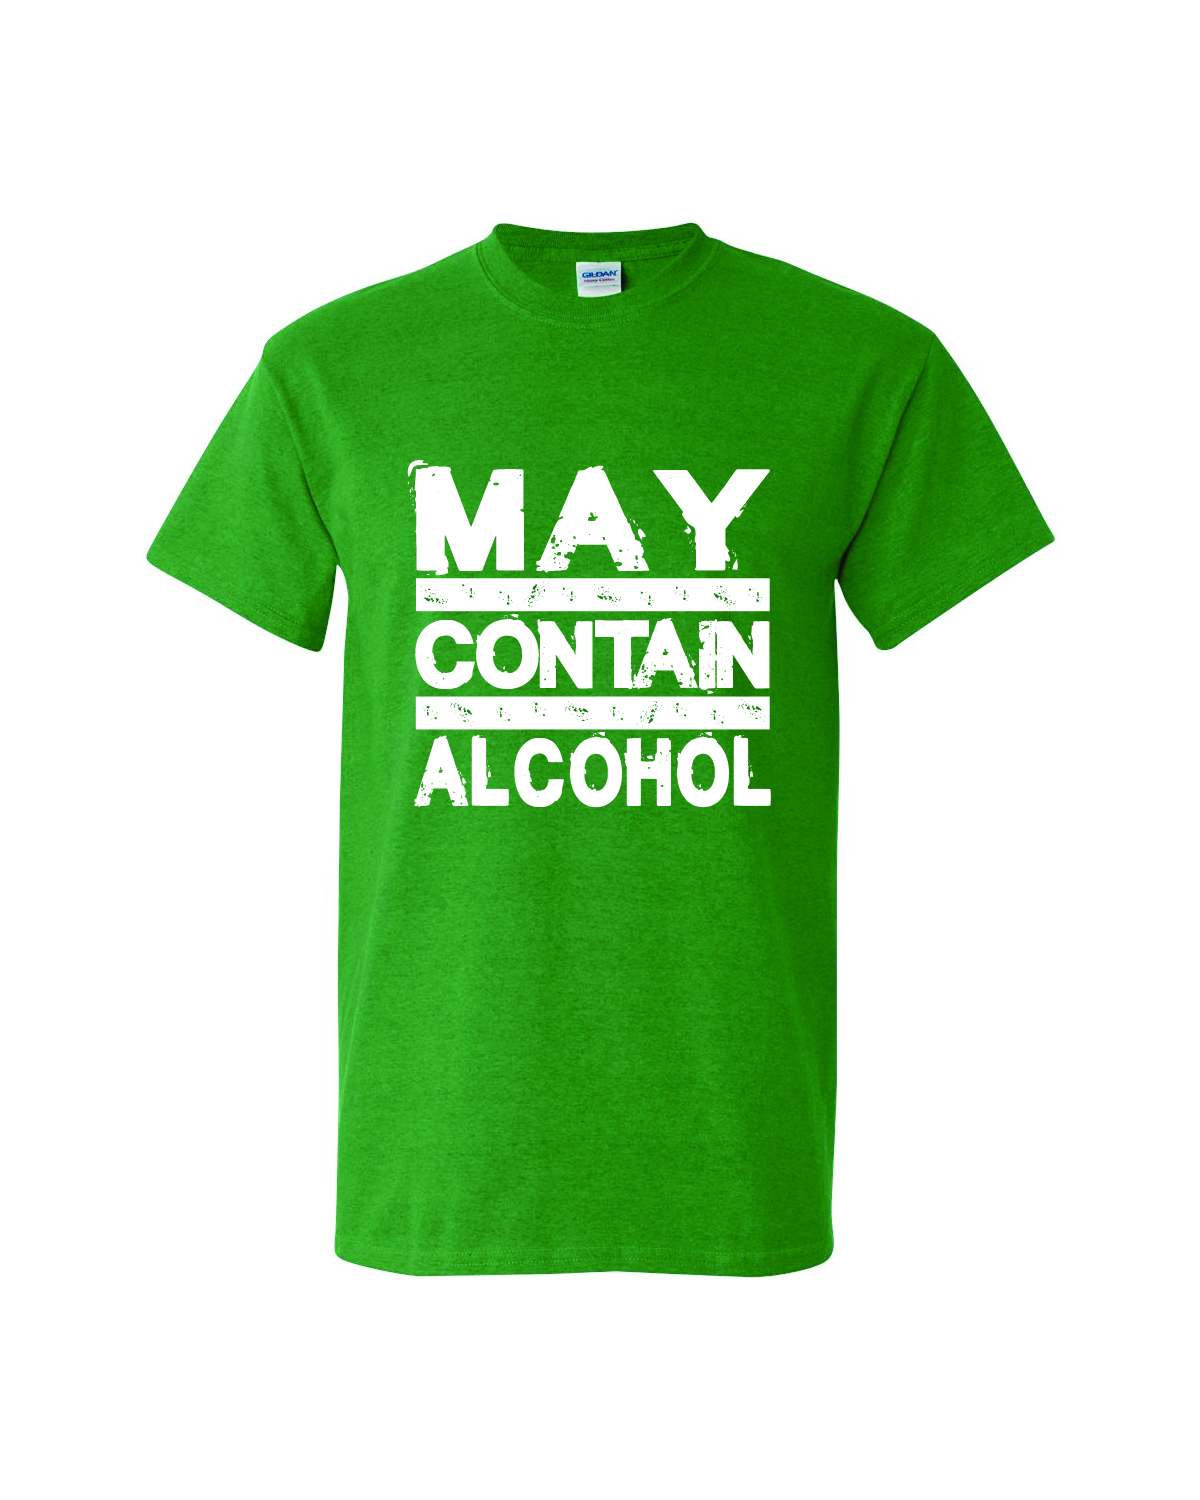 St. Patty's Day Short Sleeve Tee - May Contain Alcohol